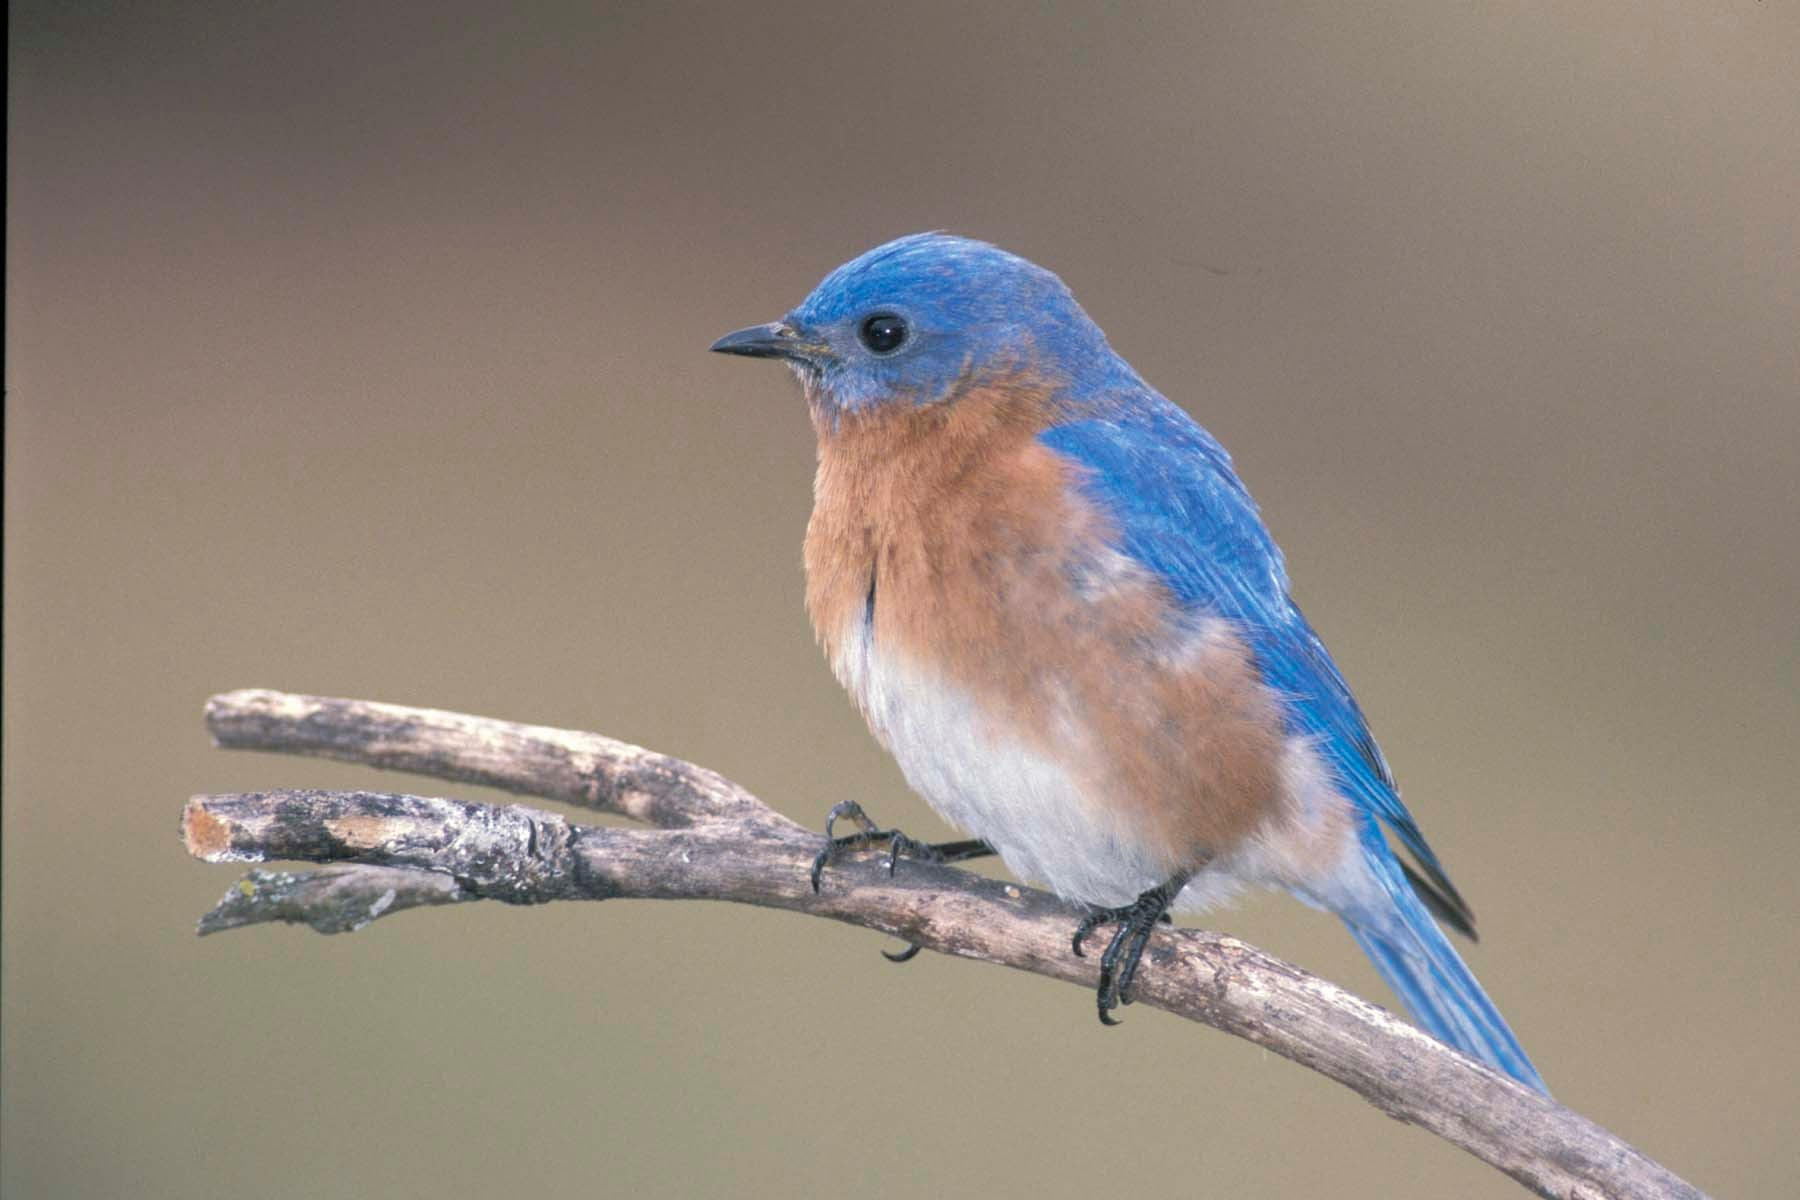 Eastern bluebird on a branch